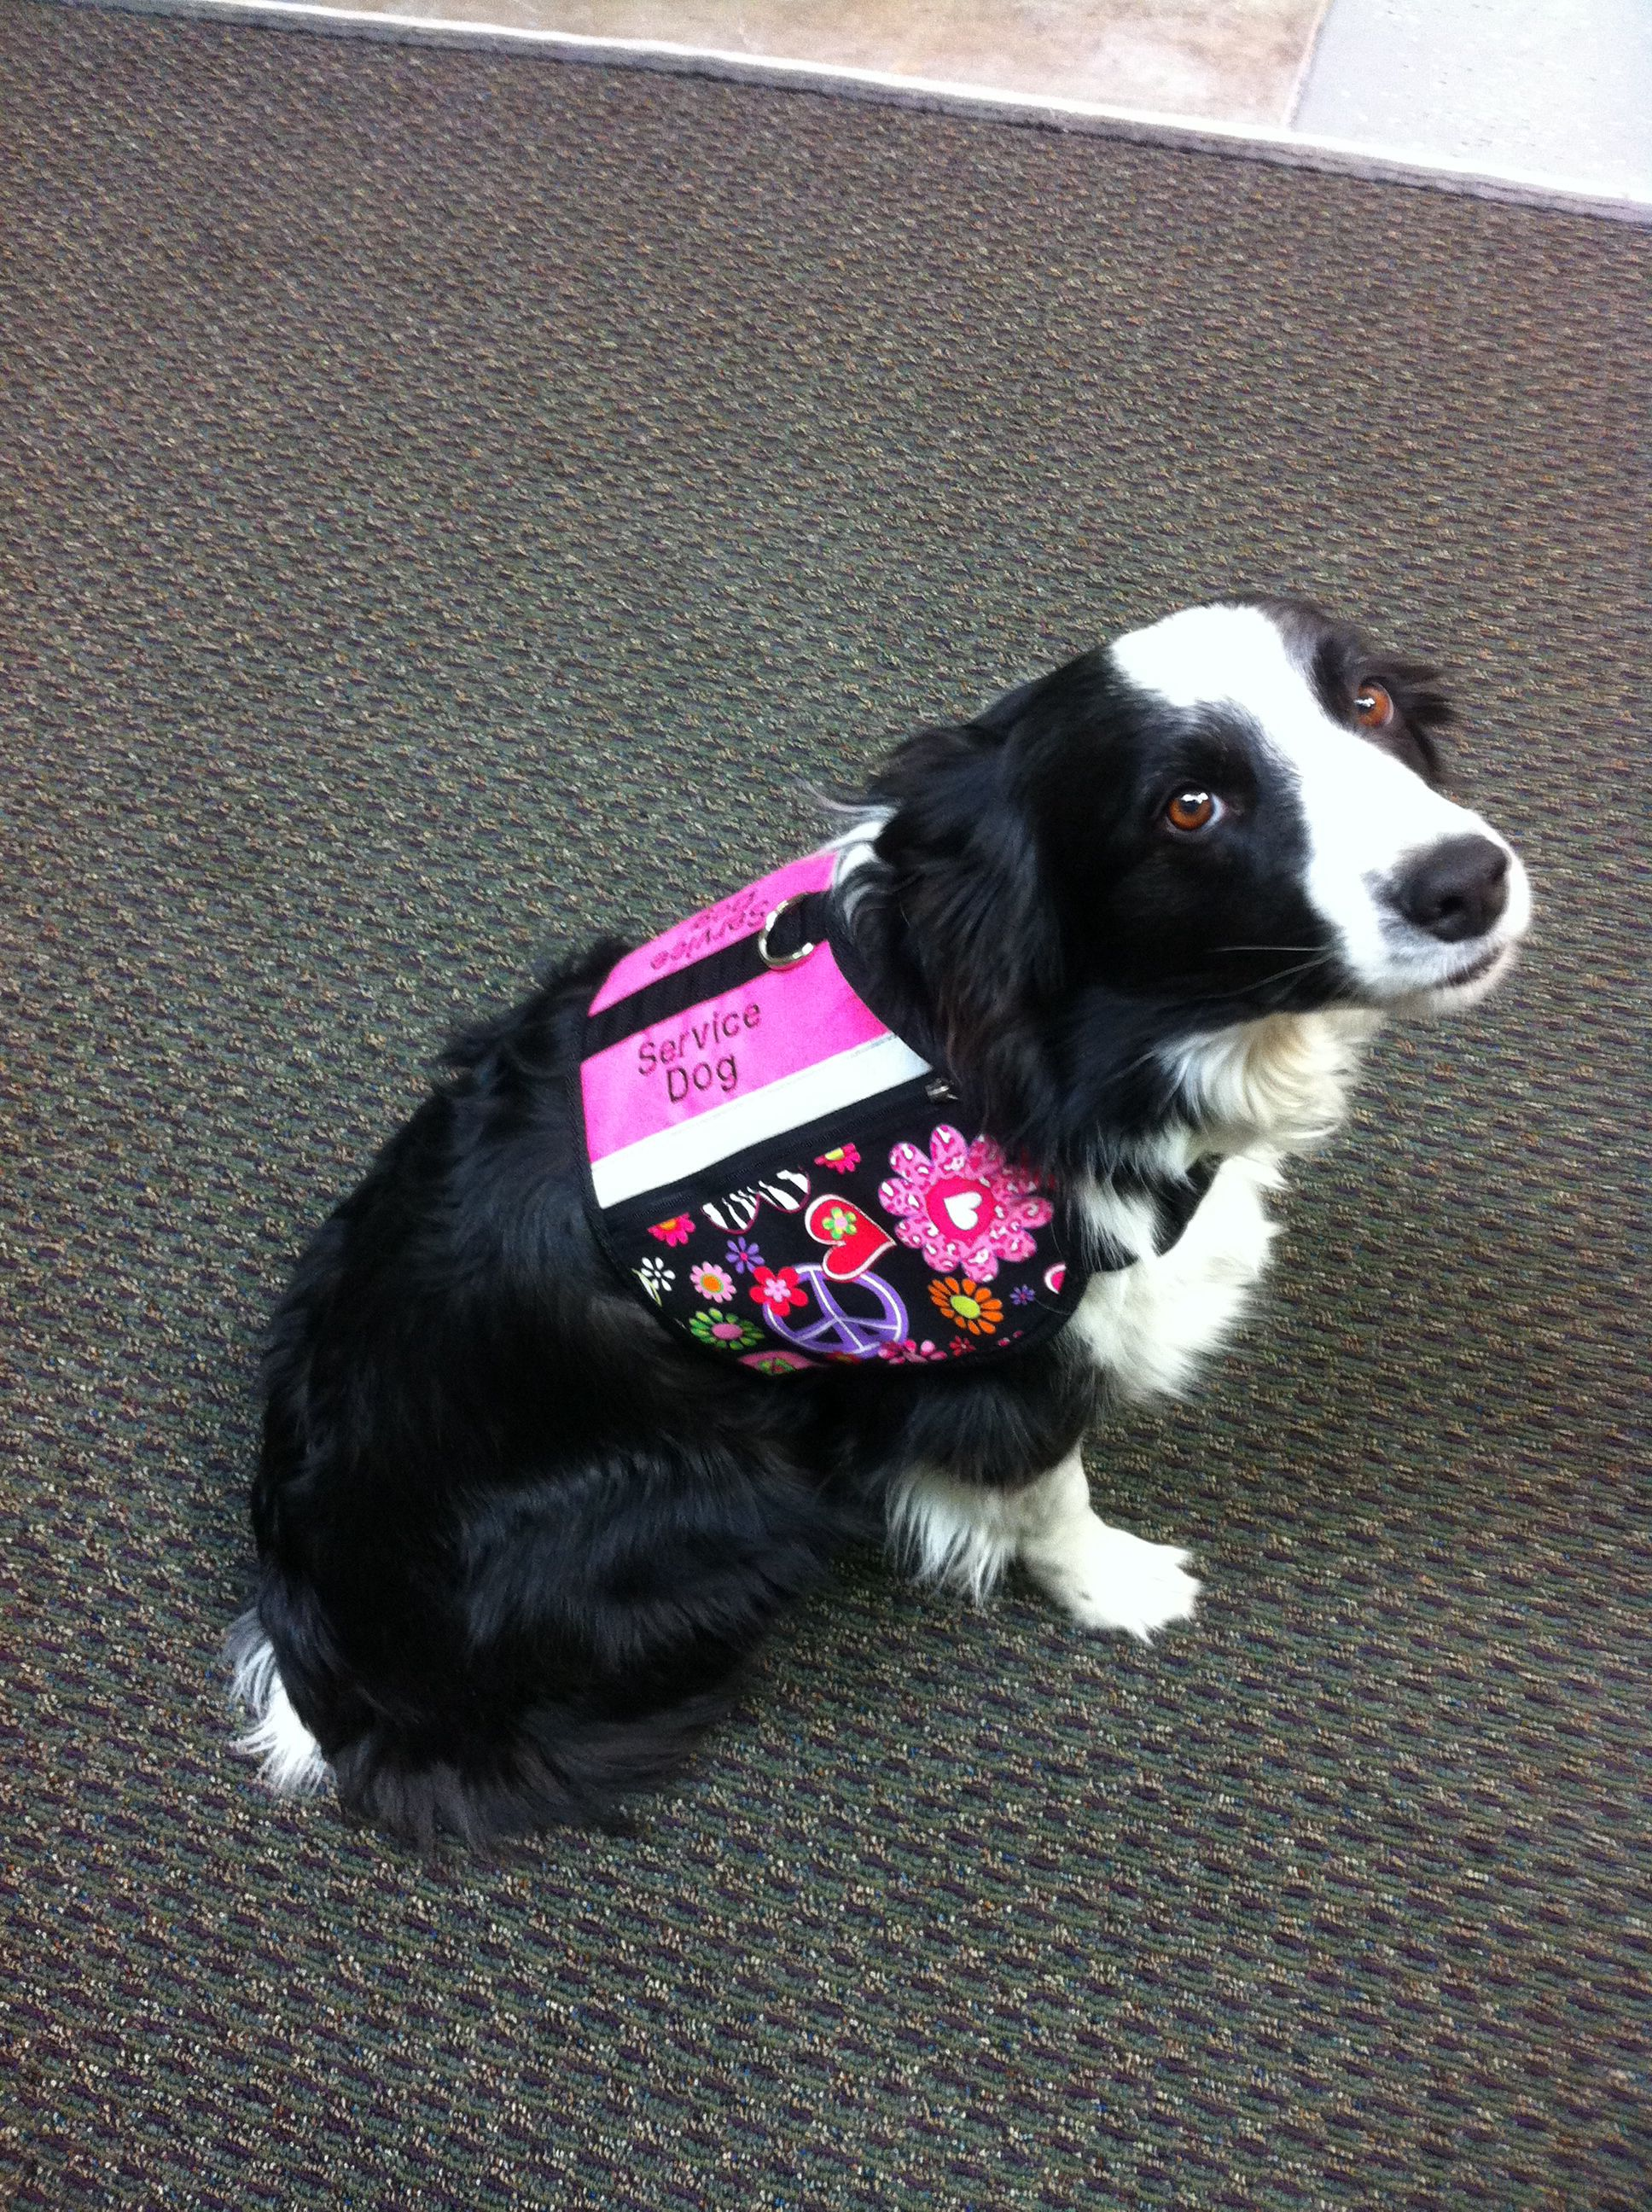 New Service Dog Vest For Riley Made By Michelle G Service